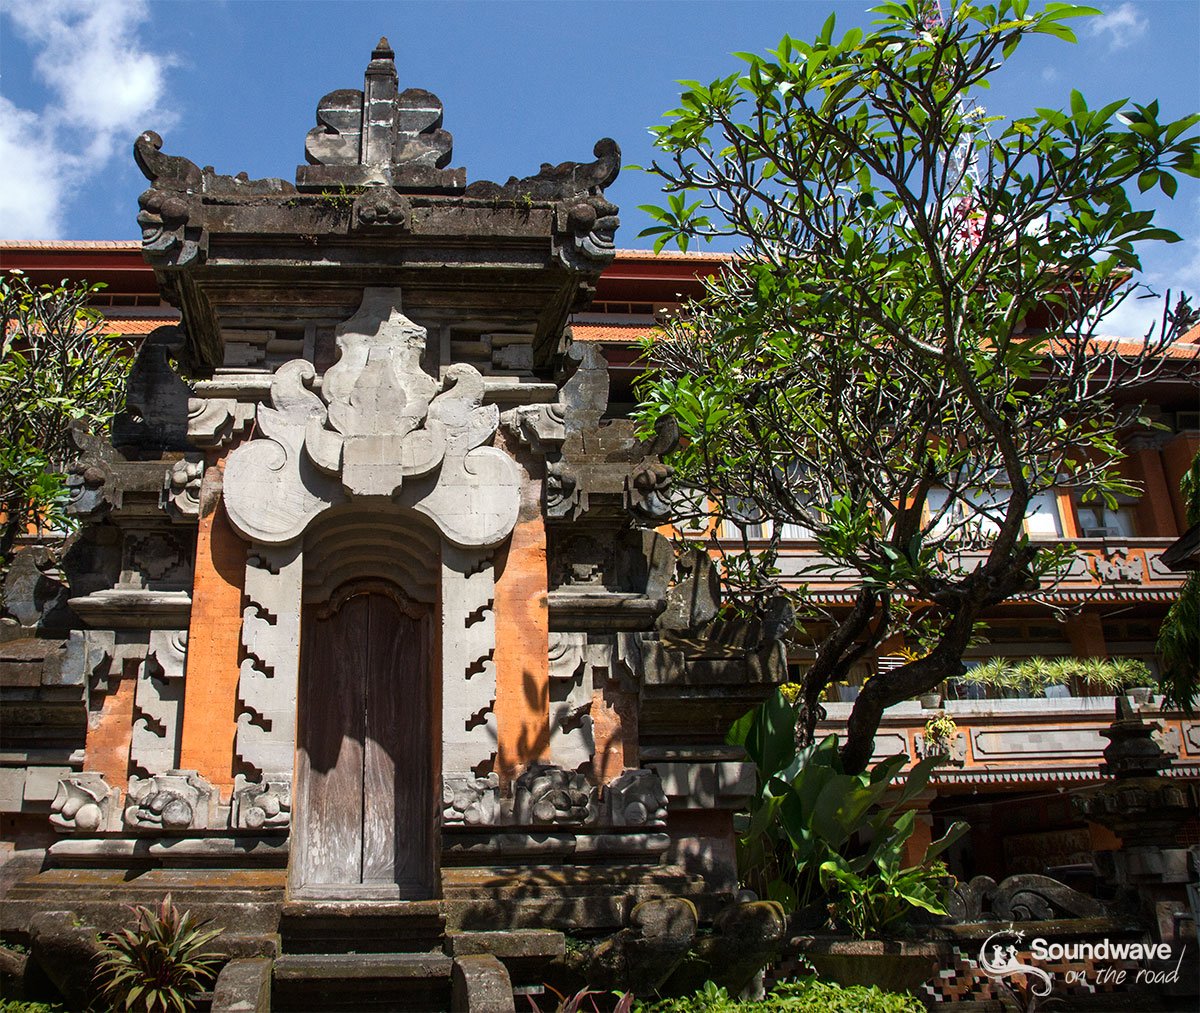 Temple door in Bali